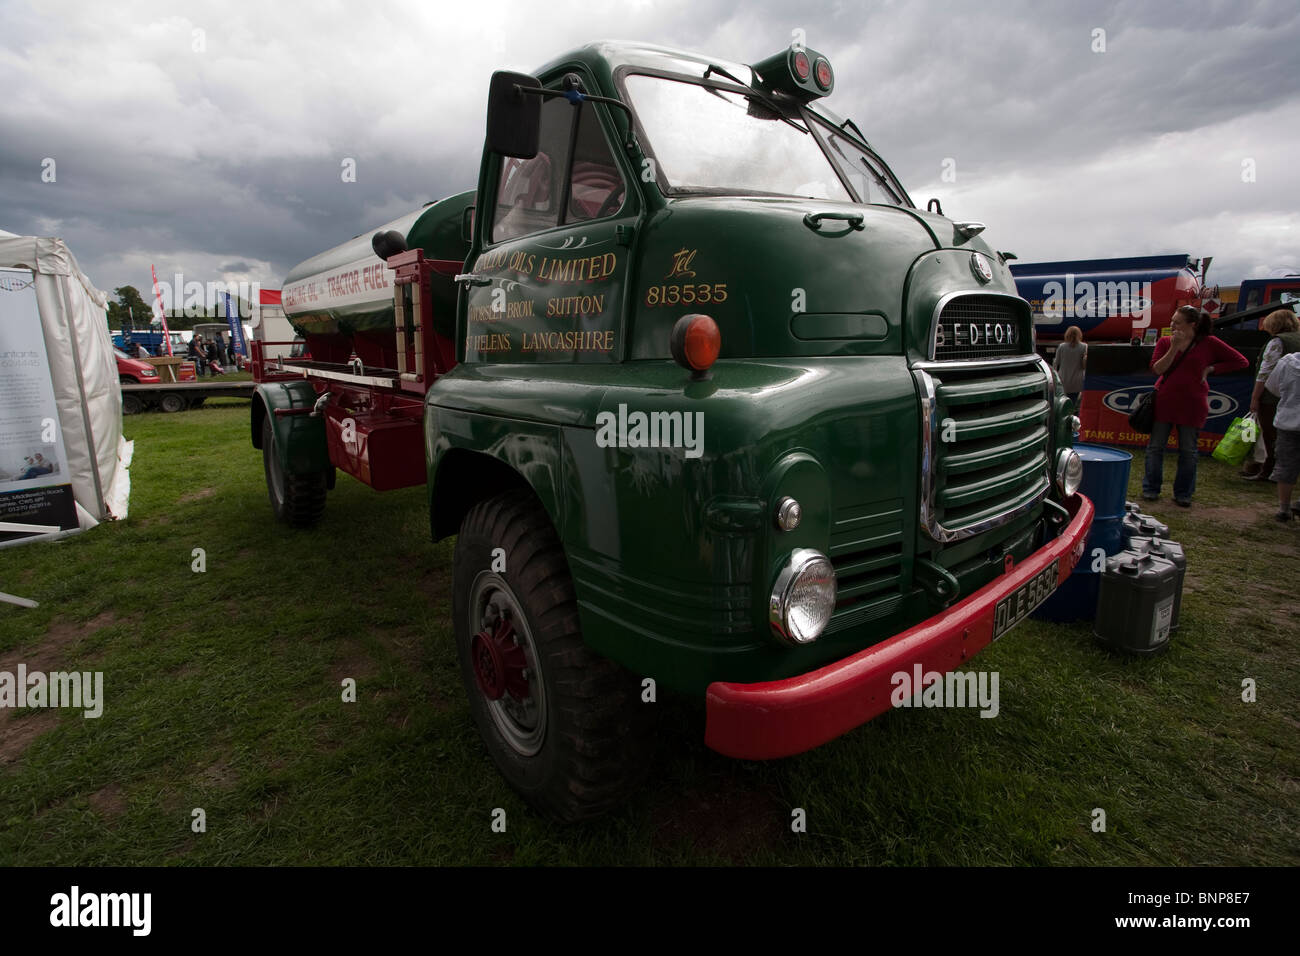 Vintage Bedford Oil truck owned and maintained by Caldo Oils displayed at the Nantwich Summer Show in July 2010 - Stock Image